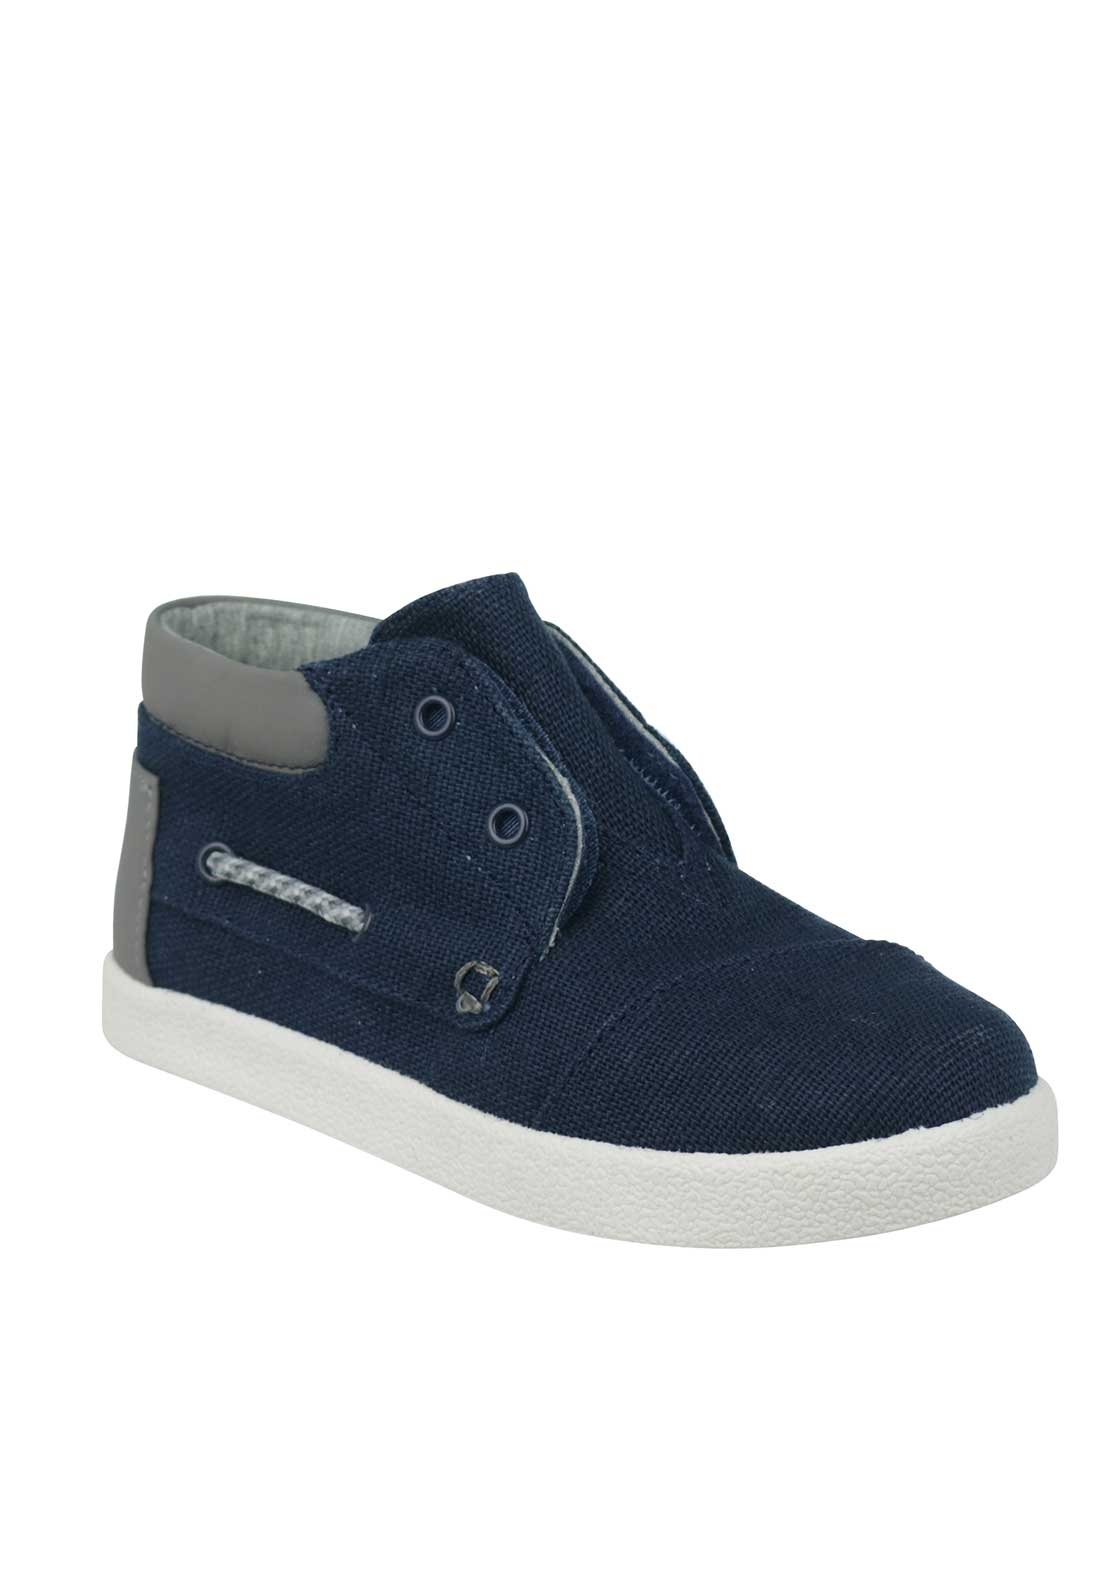 TOMS Velcro Hi Top Canvas Trainers, Navy